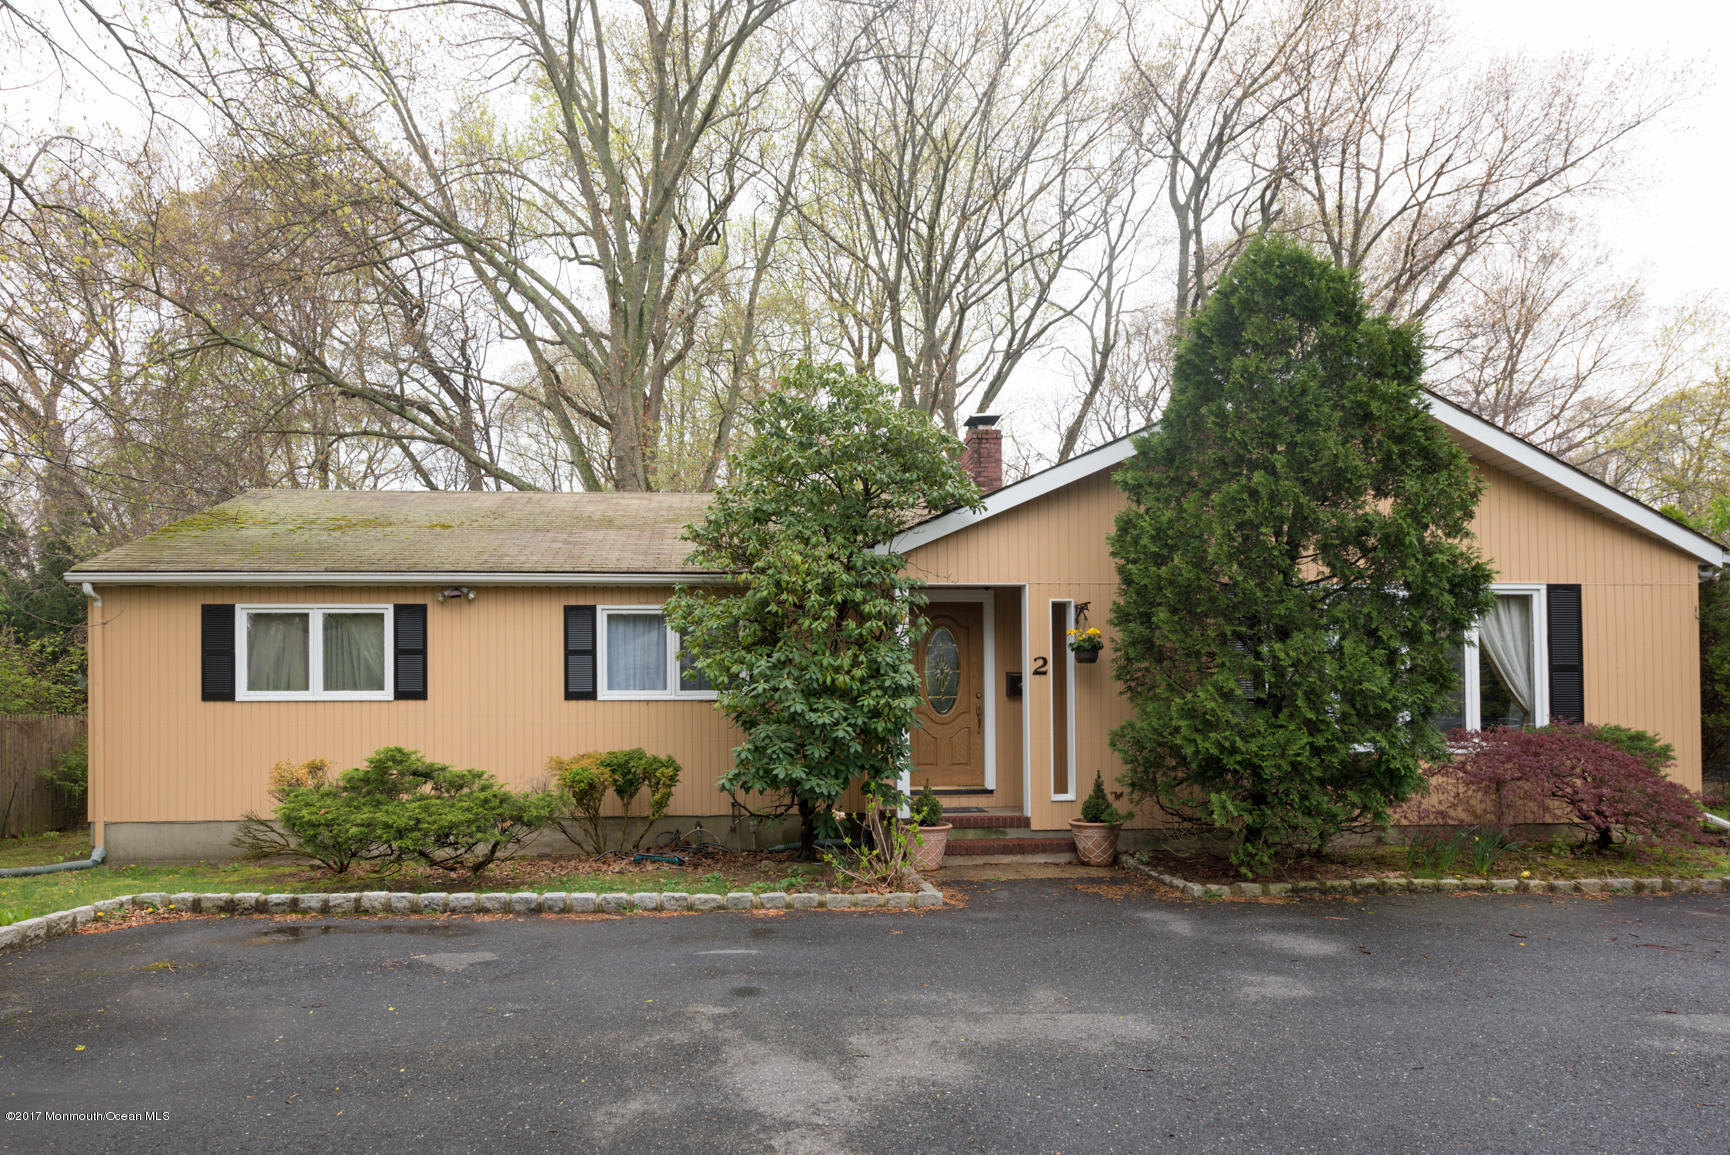 2 RUTGERS DRIVE, FAIR HAVEN, NJ 07704